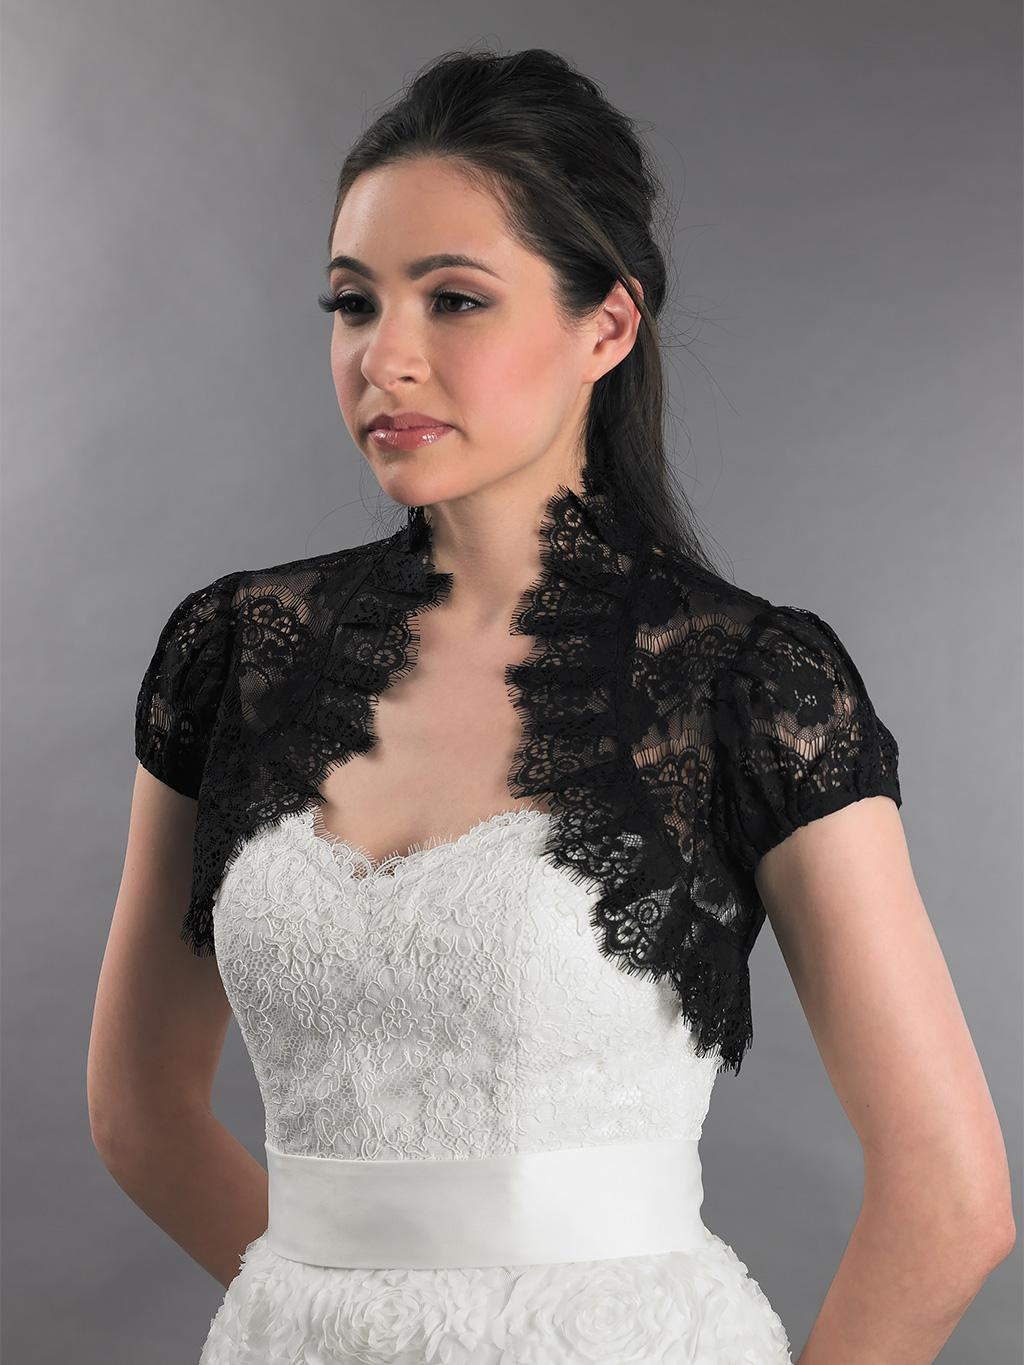 Lace Bolero Shrug Black Boleros Bridal Jackets Wedding Shawls ...